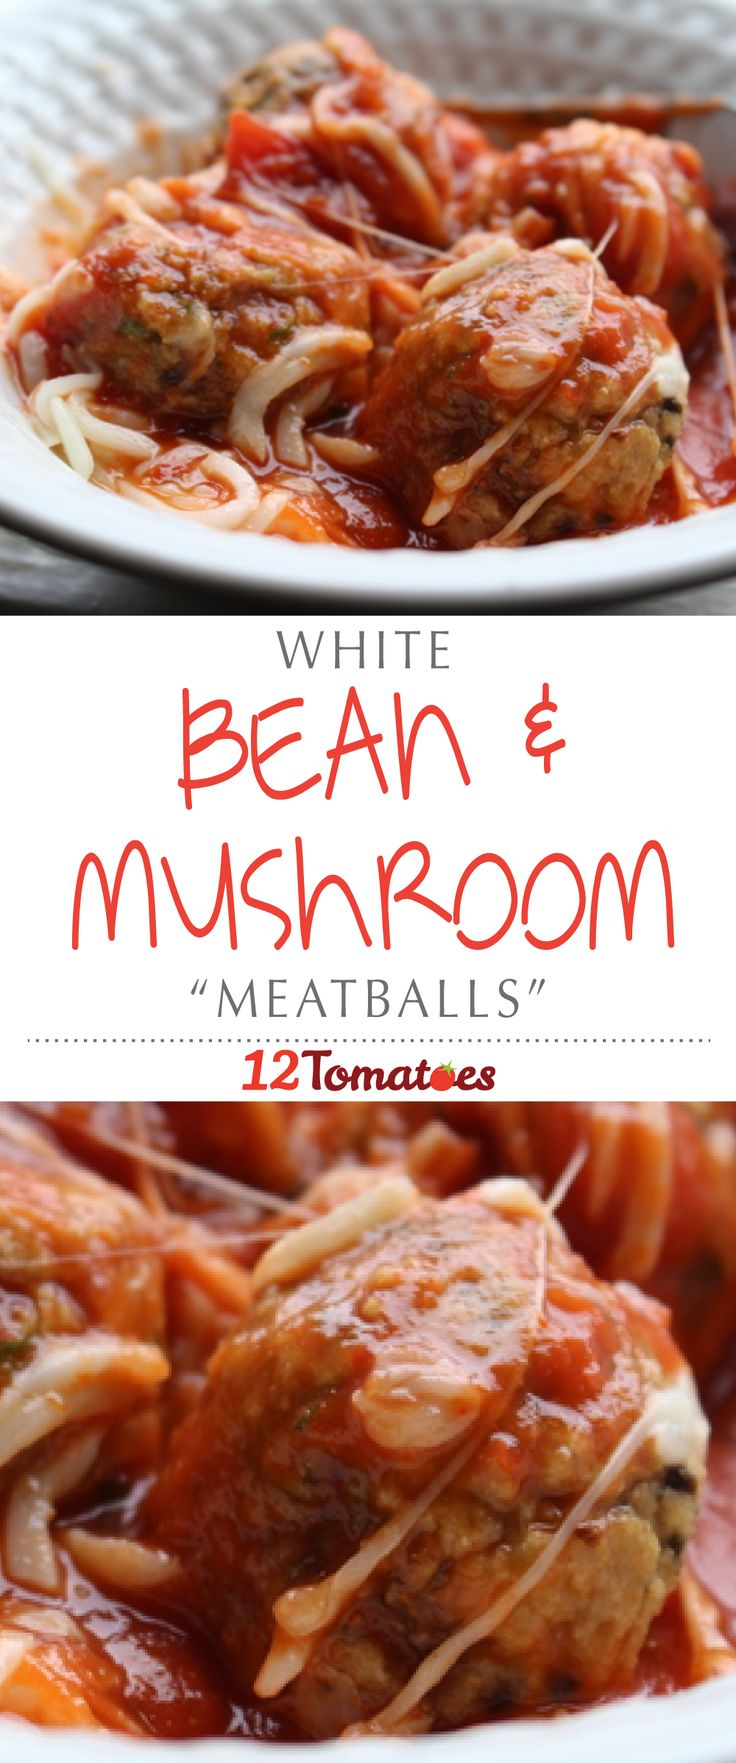 """White Bean & Mushroom """"Meatballs"""" 